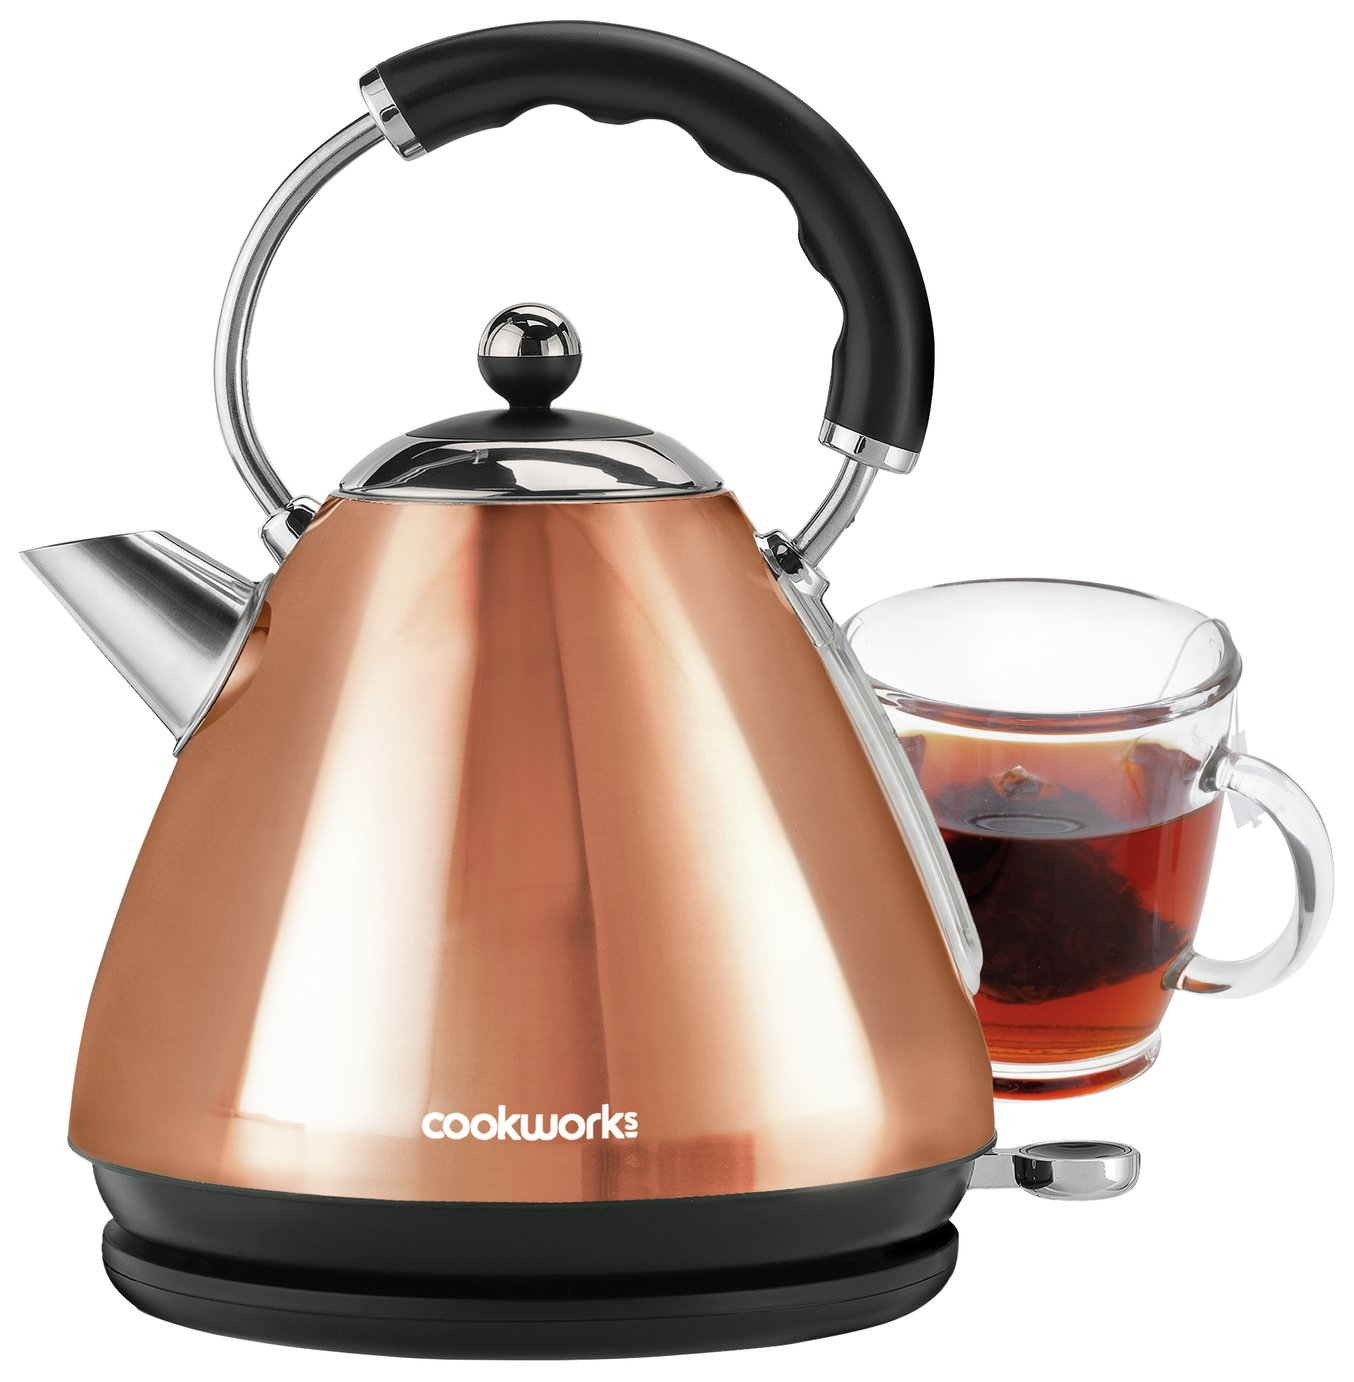 Image of Cookworks Pyramid Kettle - Copper